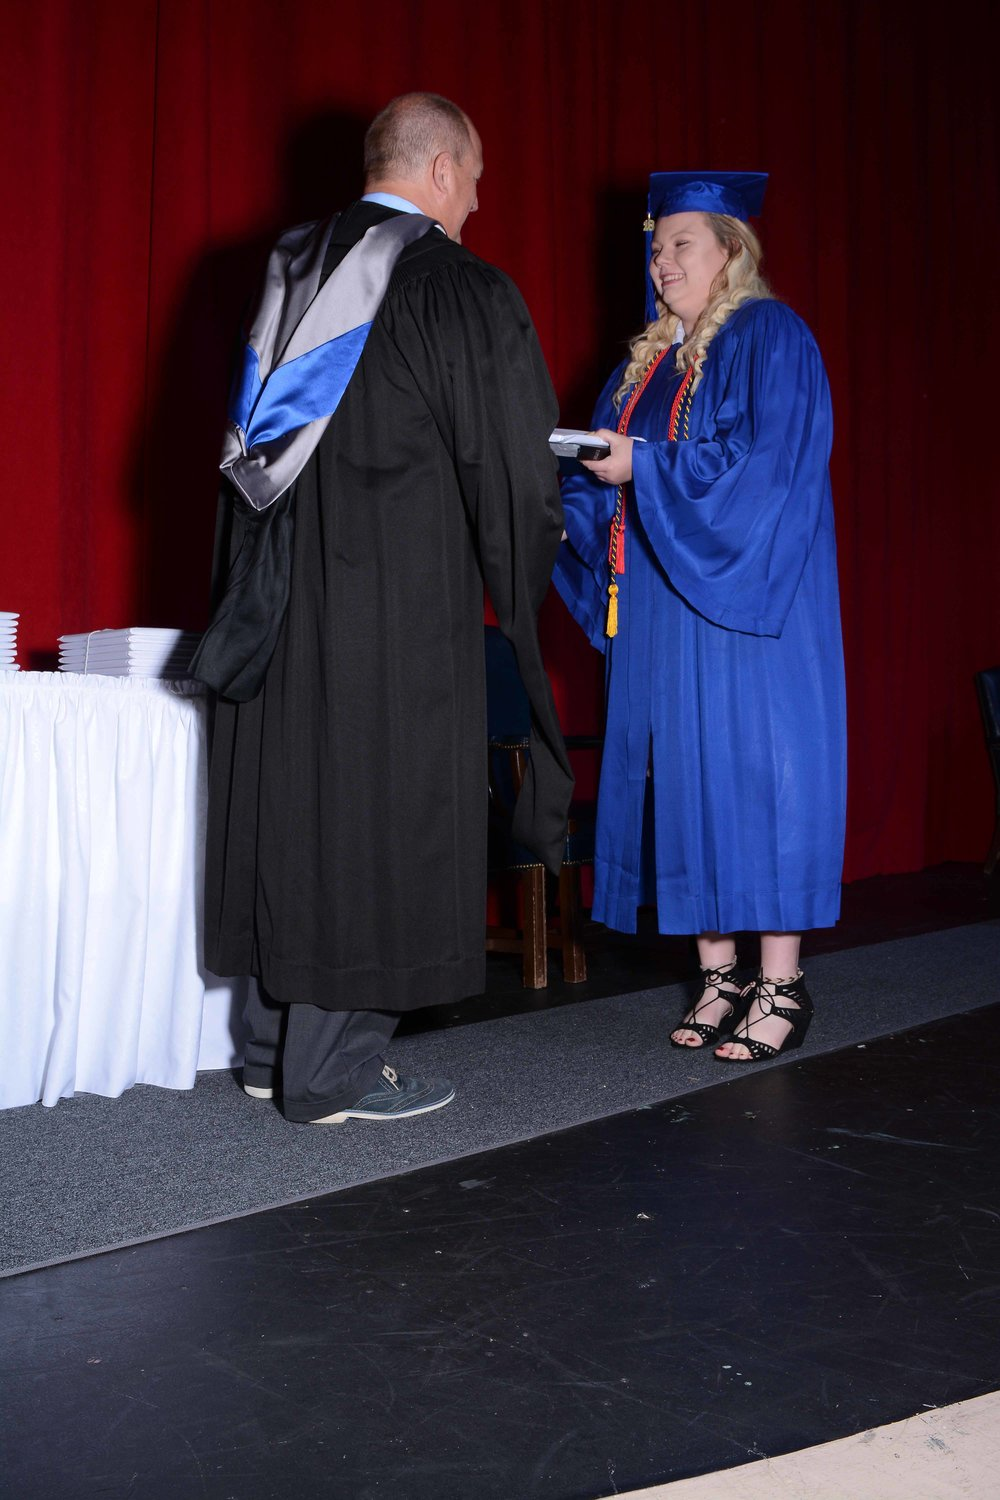 May14 Commencement147.jpg